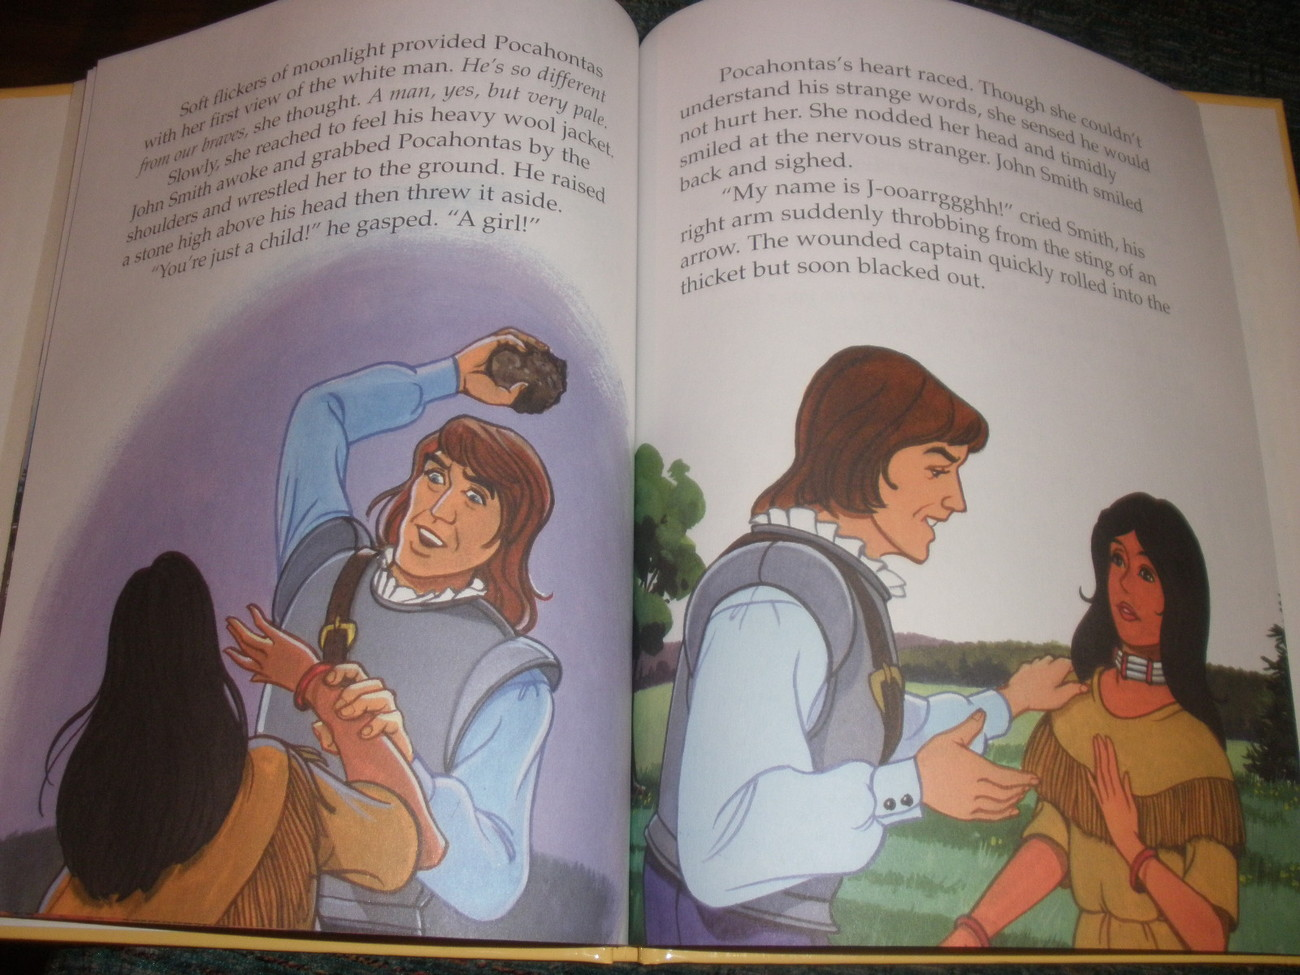 Pocahontas children's book, by Andy Holmes